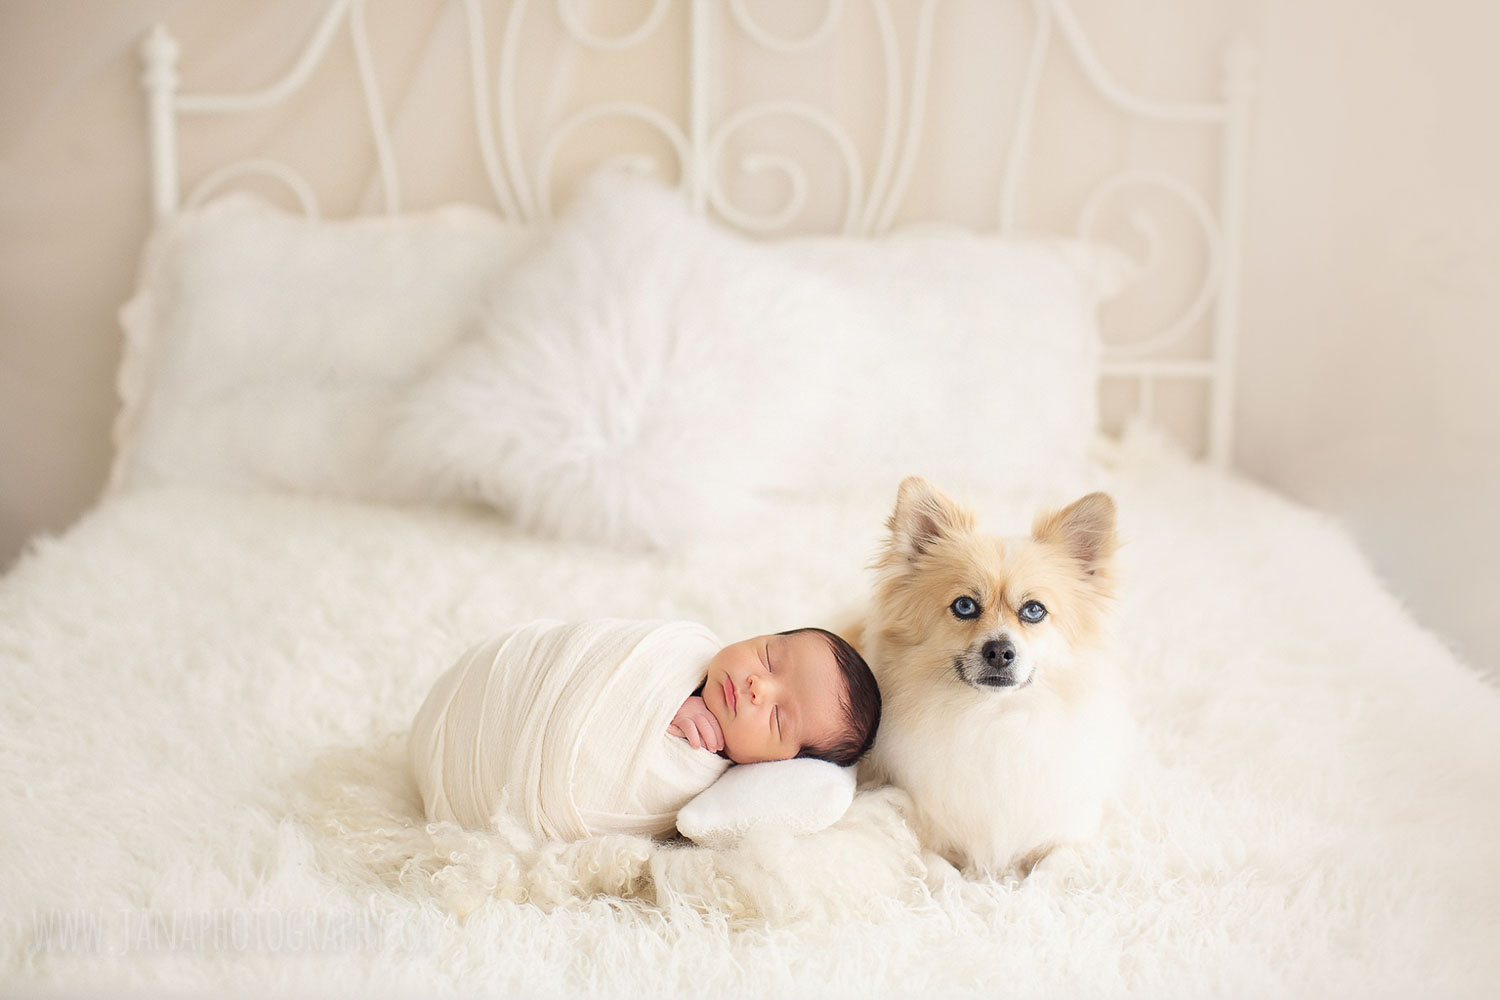 newborn baby boy with dog - natural light - white bedroom